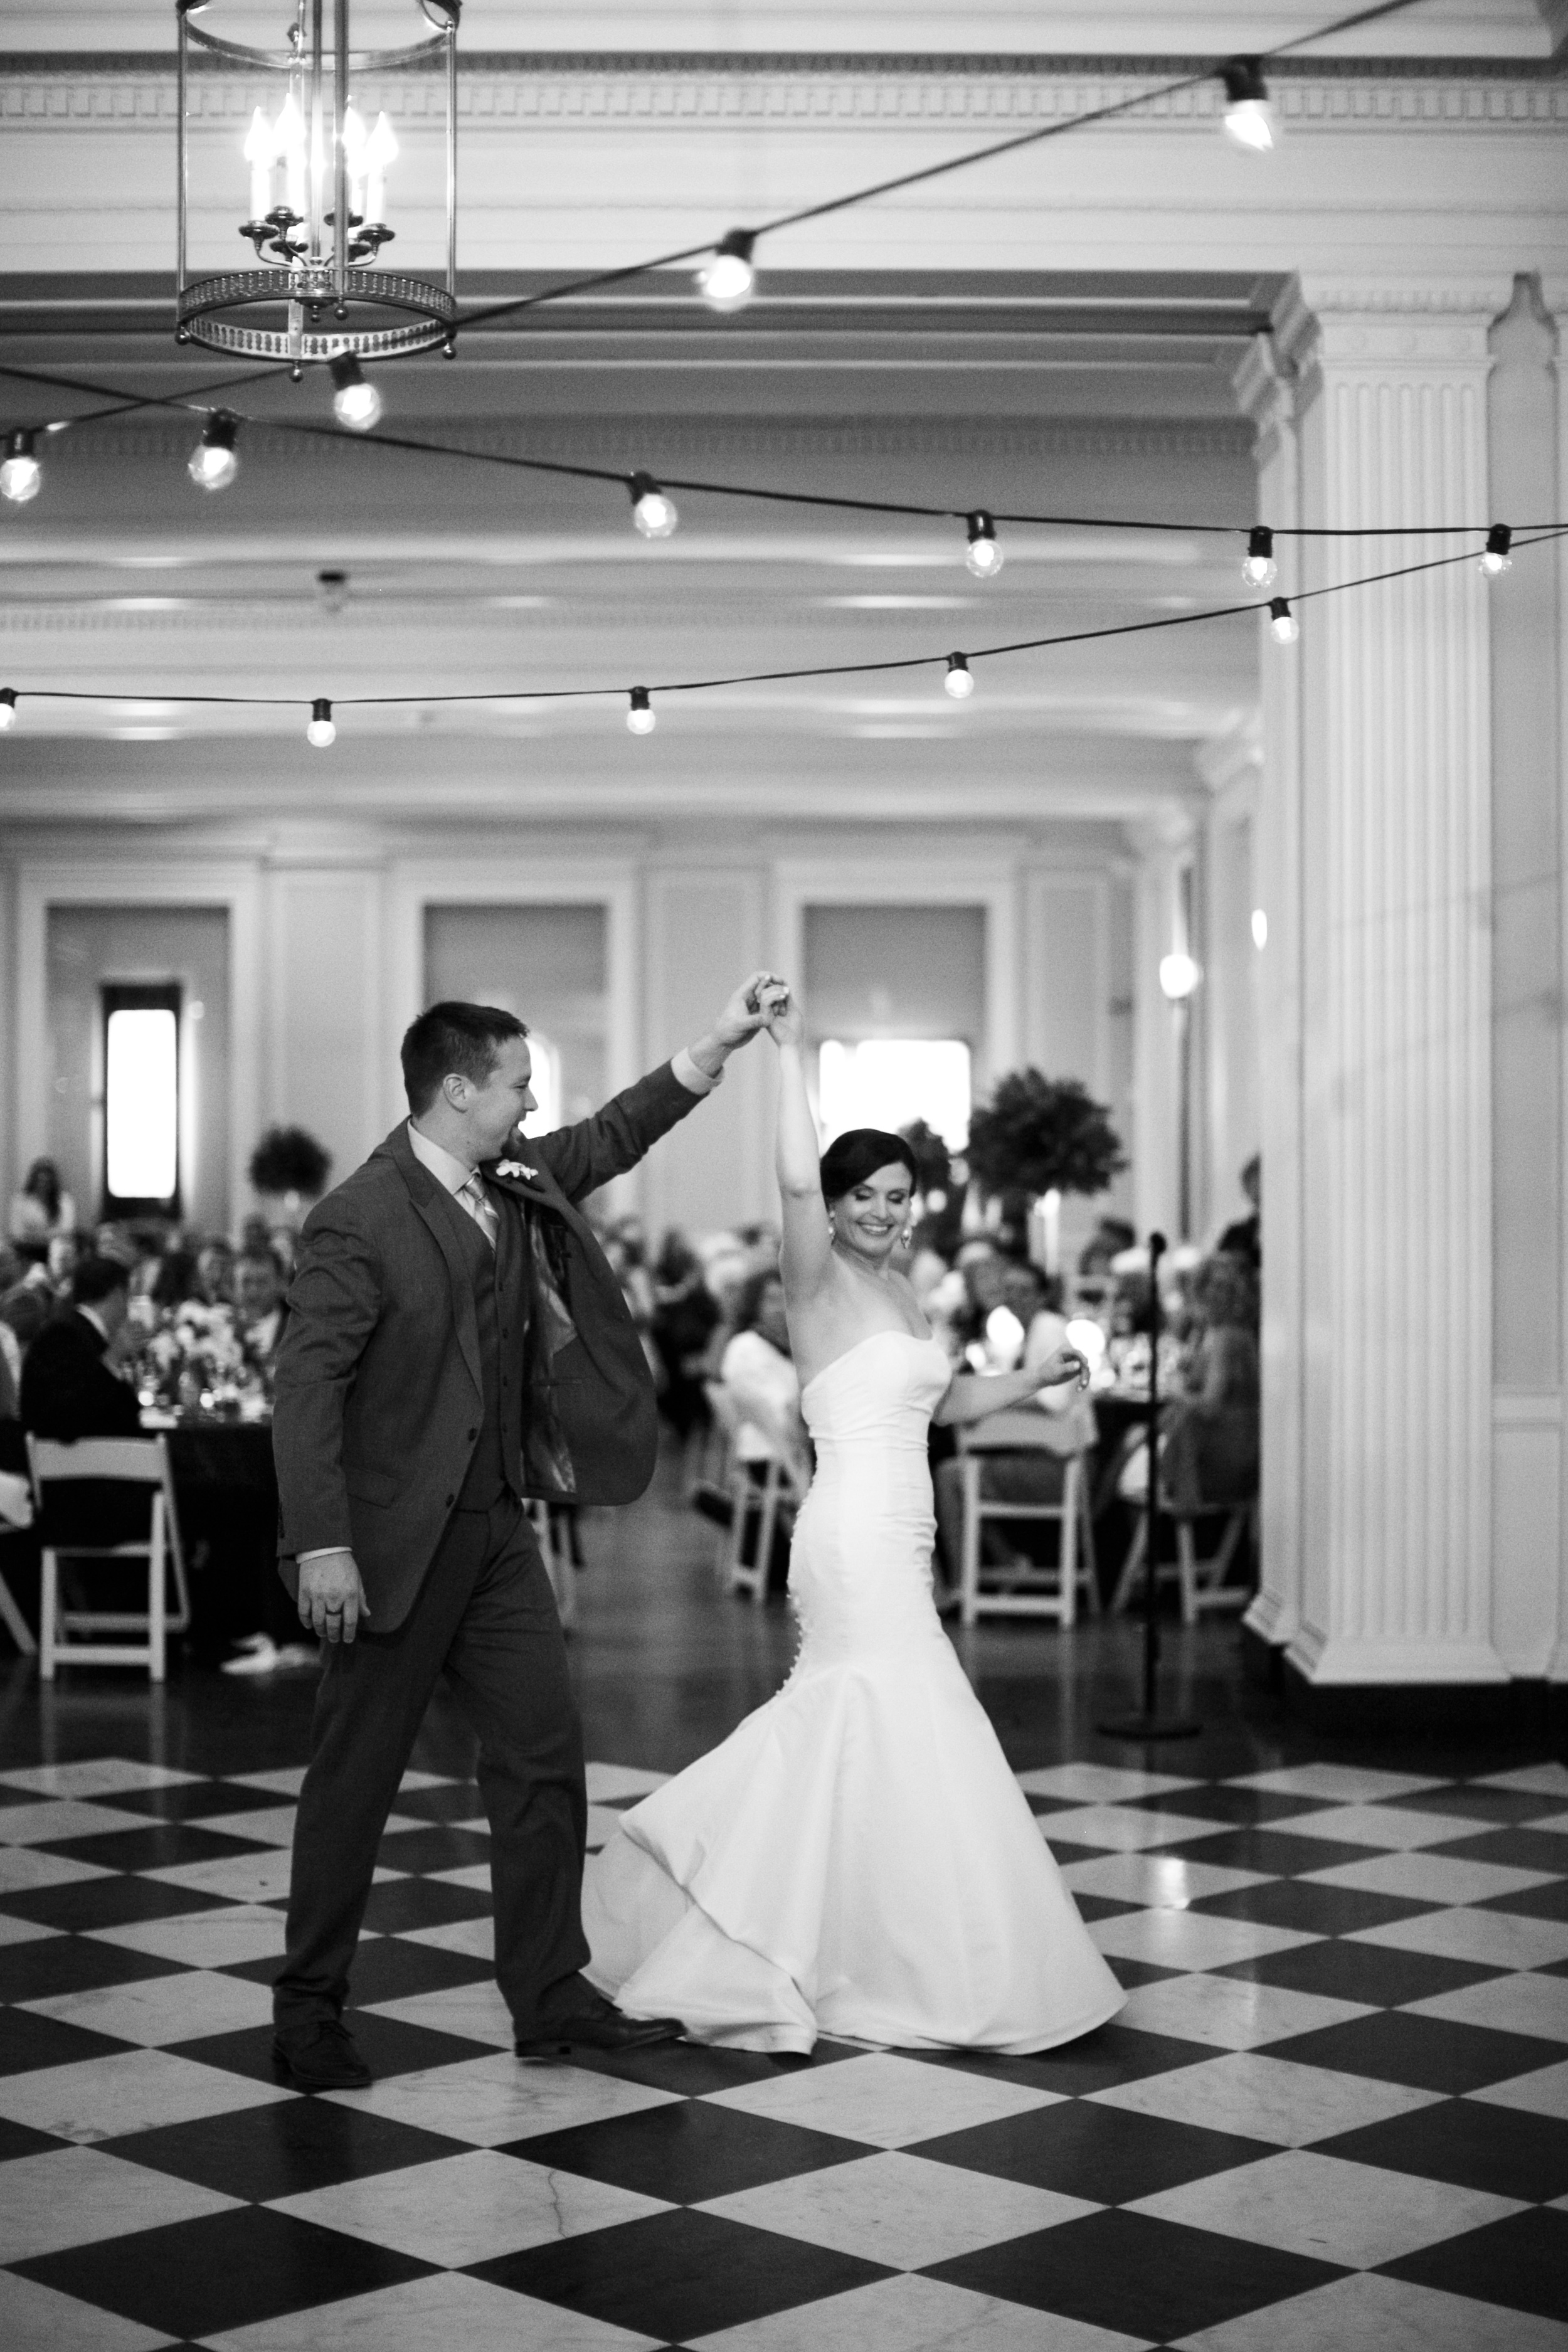 Wedding at the Chicago History Musuem